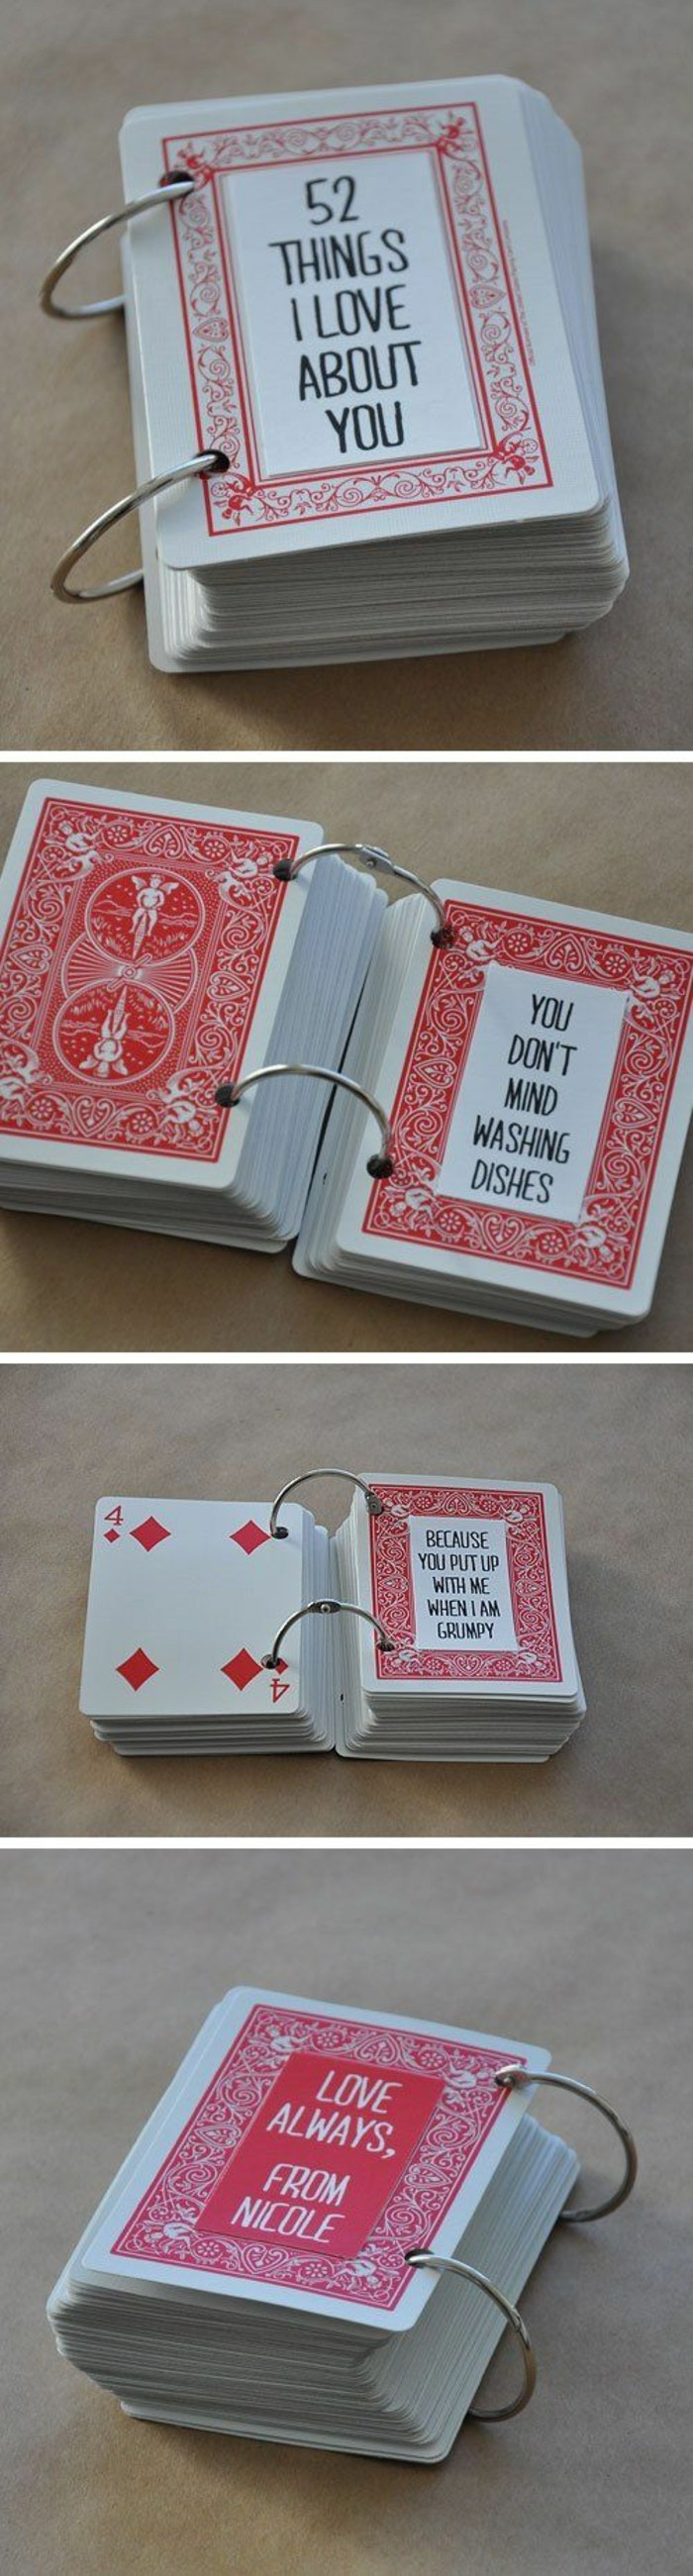 things i love about you, deck of cards, crafty christmas gifts, diy tutorial, side by side pictures